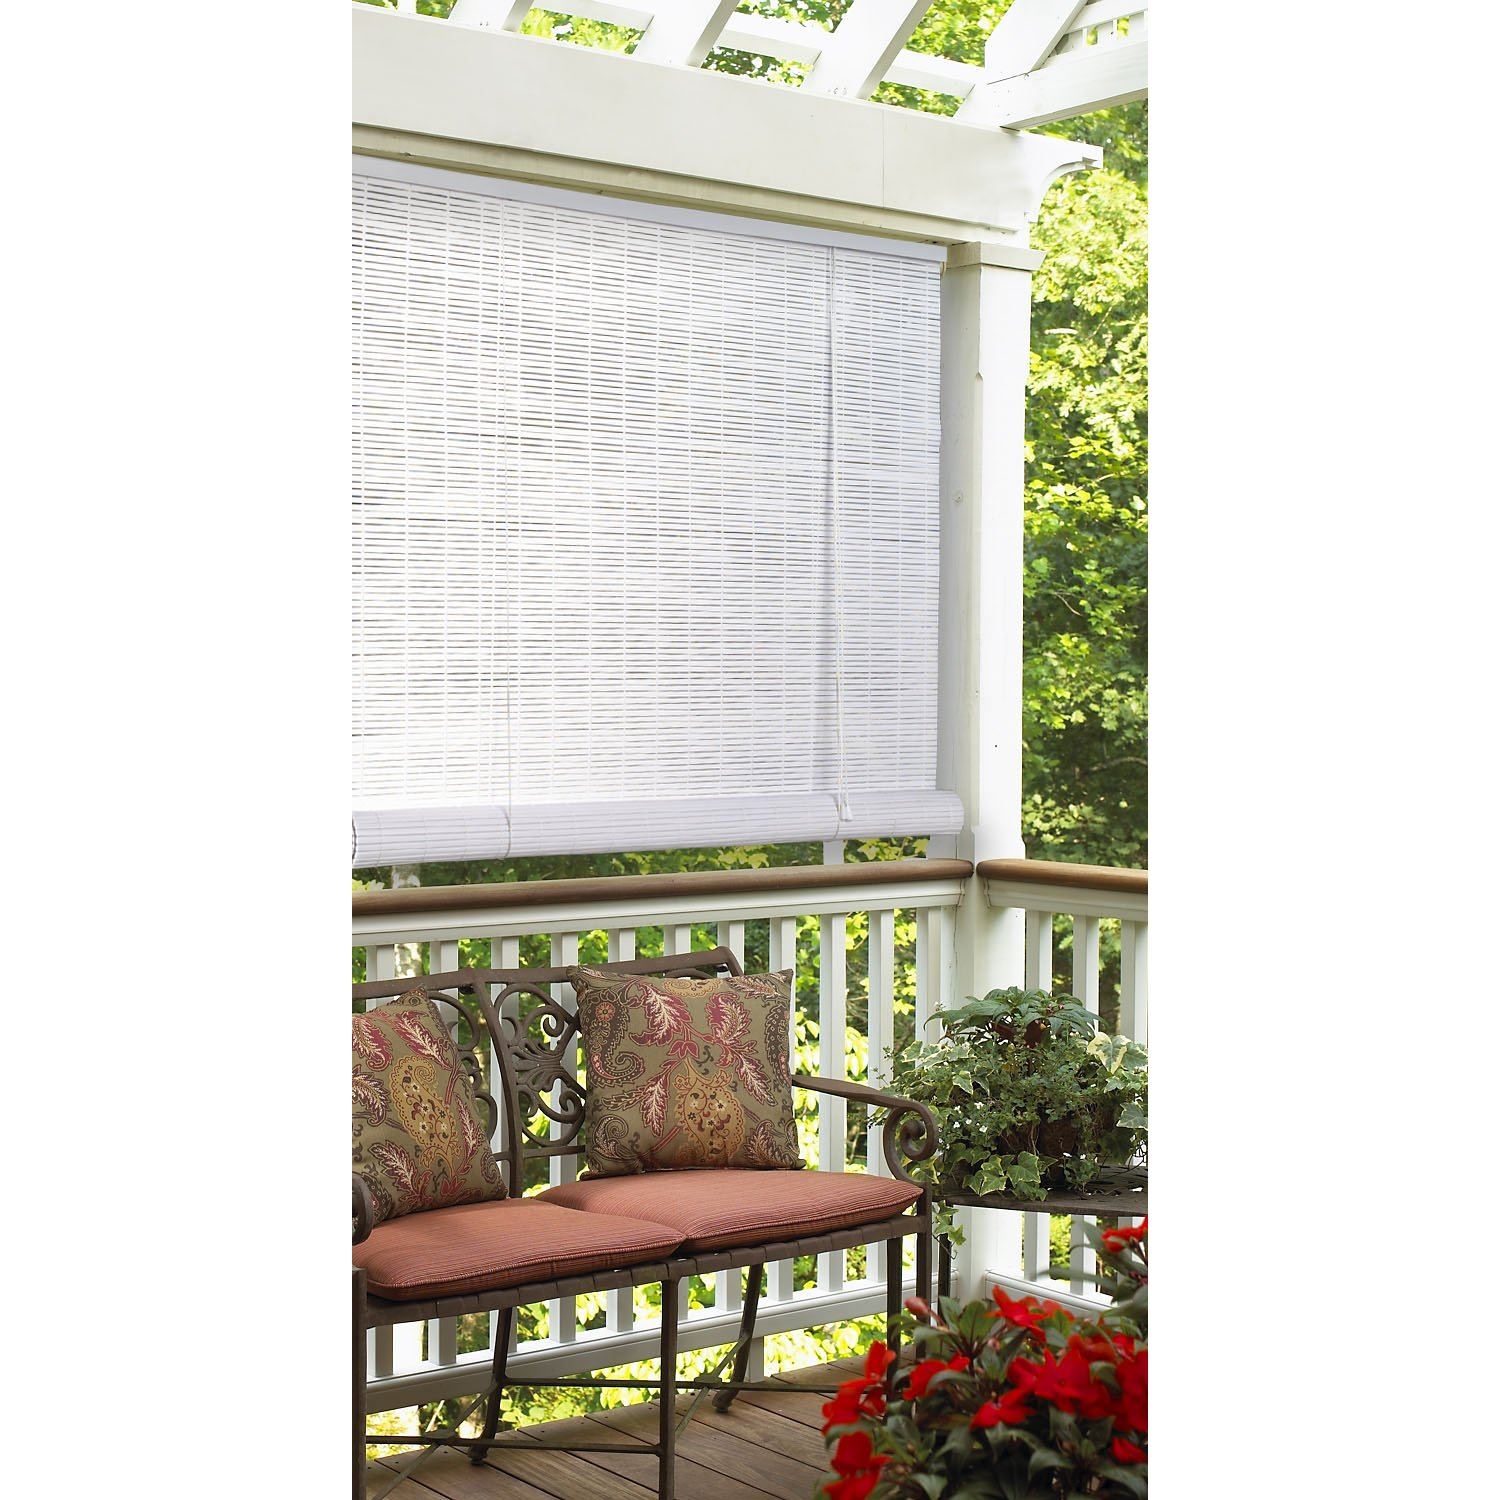 Excellent Menards Window Blinds for Best Window Blind Ideas: Menards Fence Panels | Menards Window Blinds | Window Shades Lowes